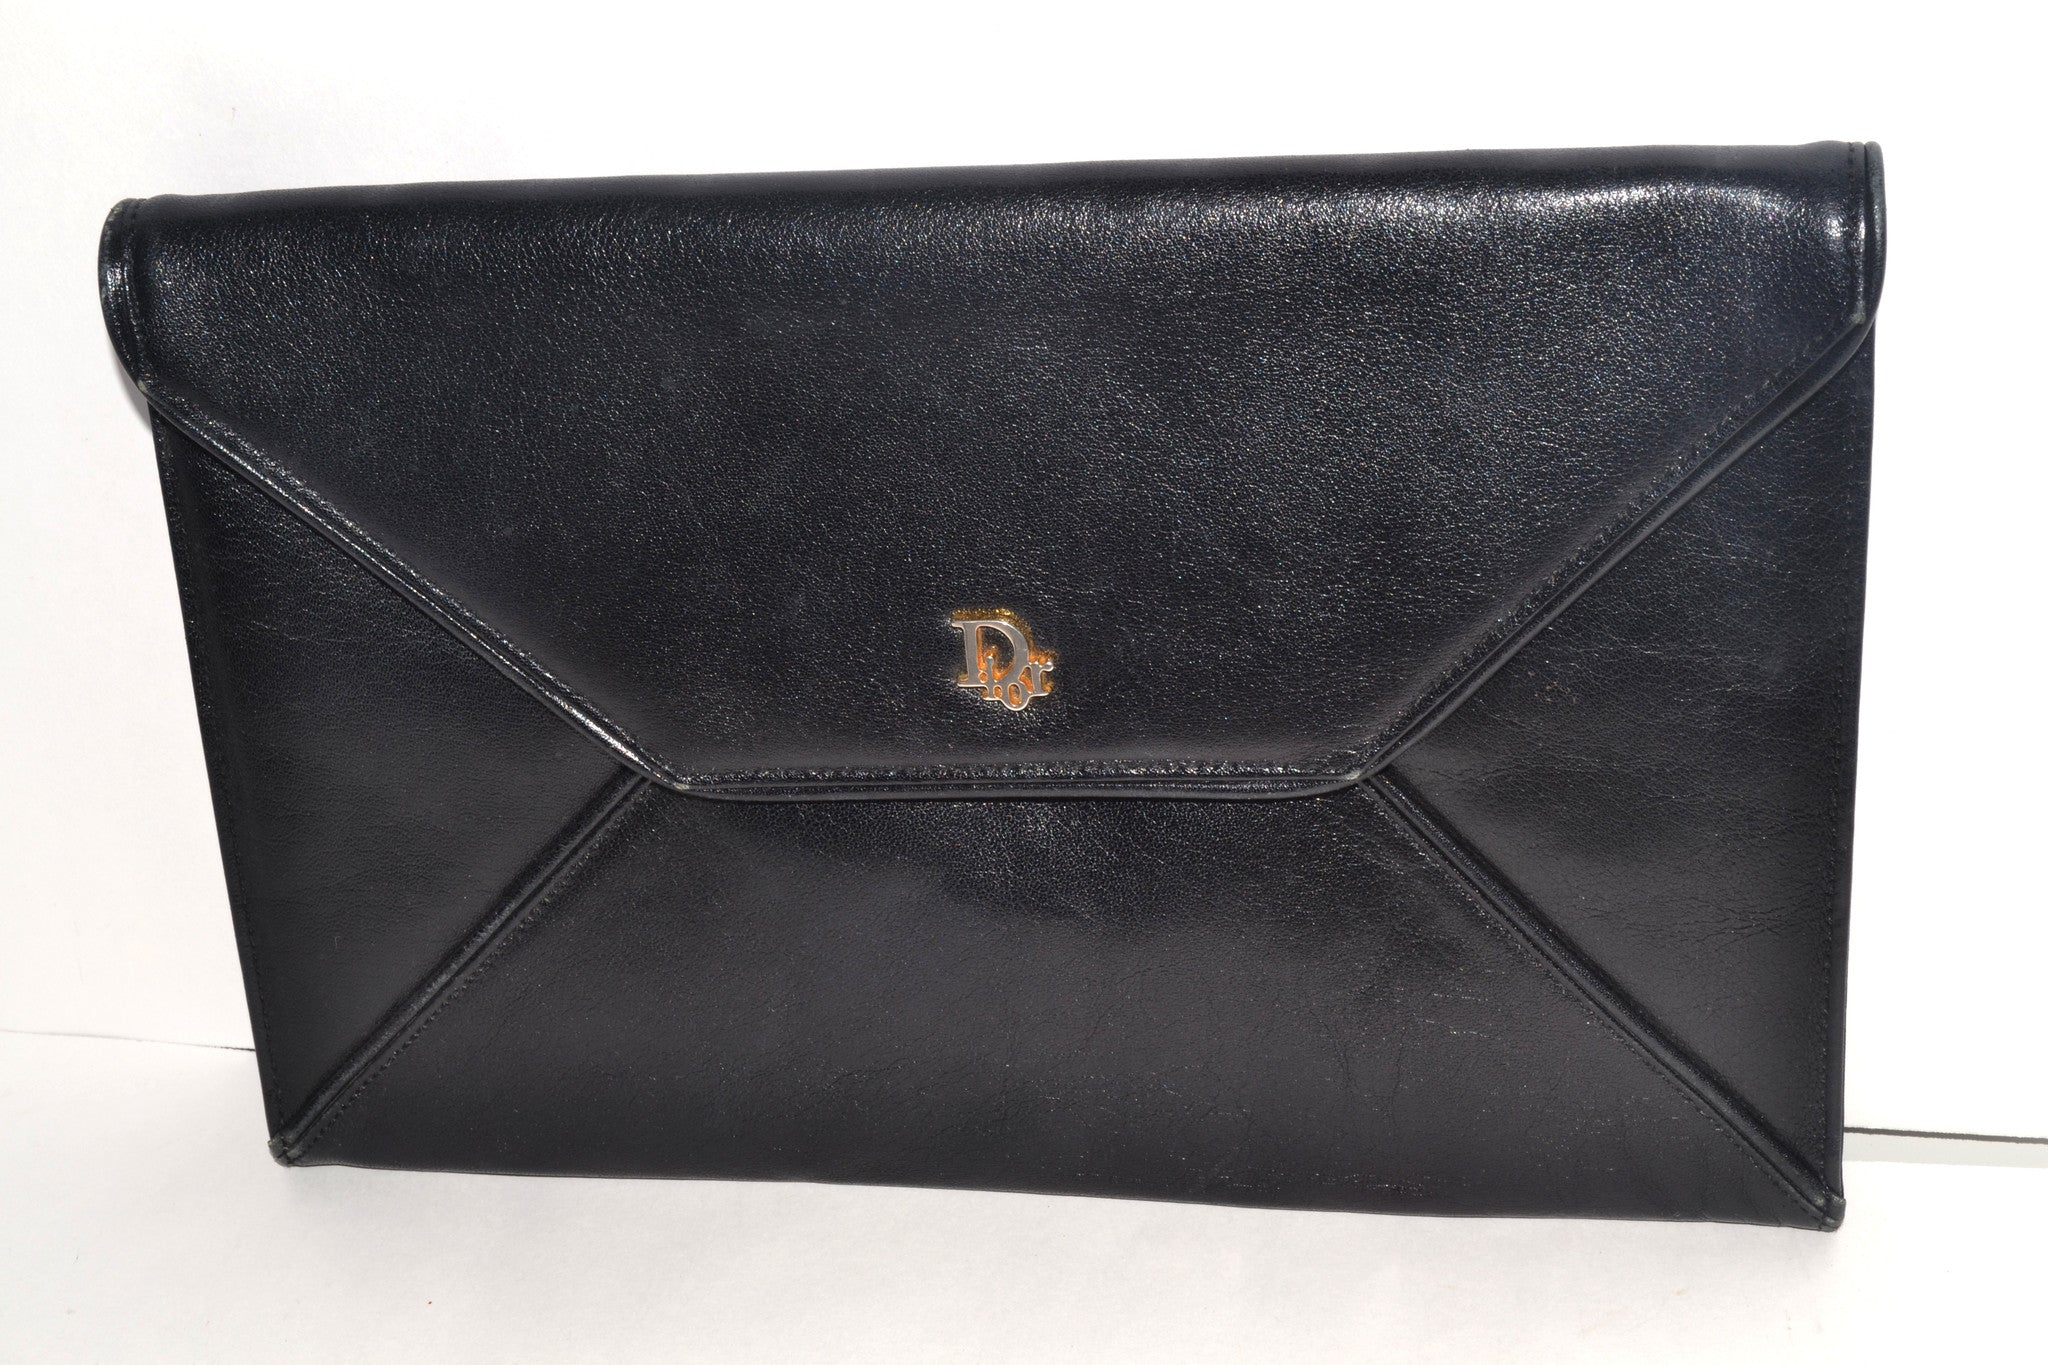 Vintage Christian Dior Black Leather Clutch